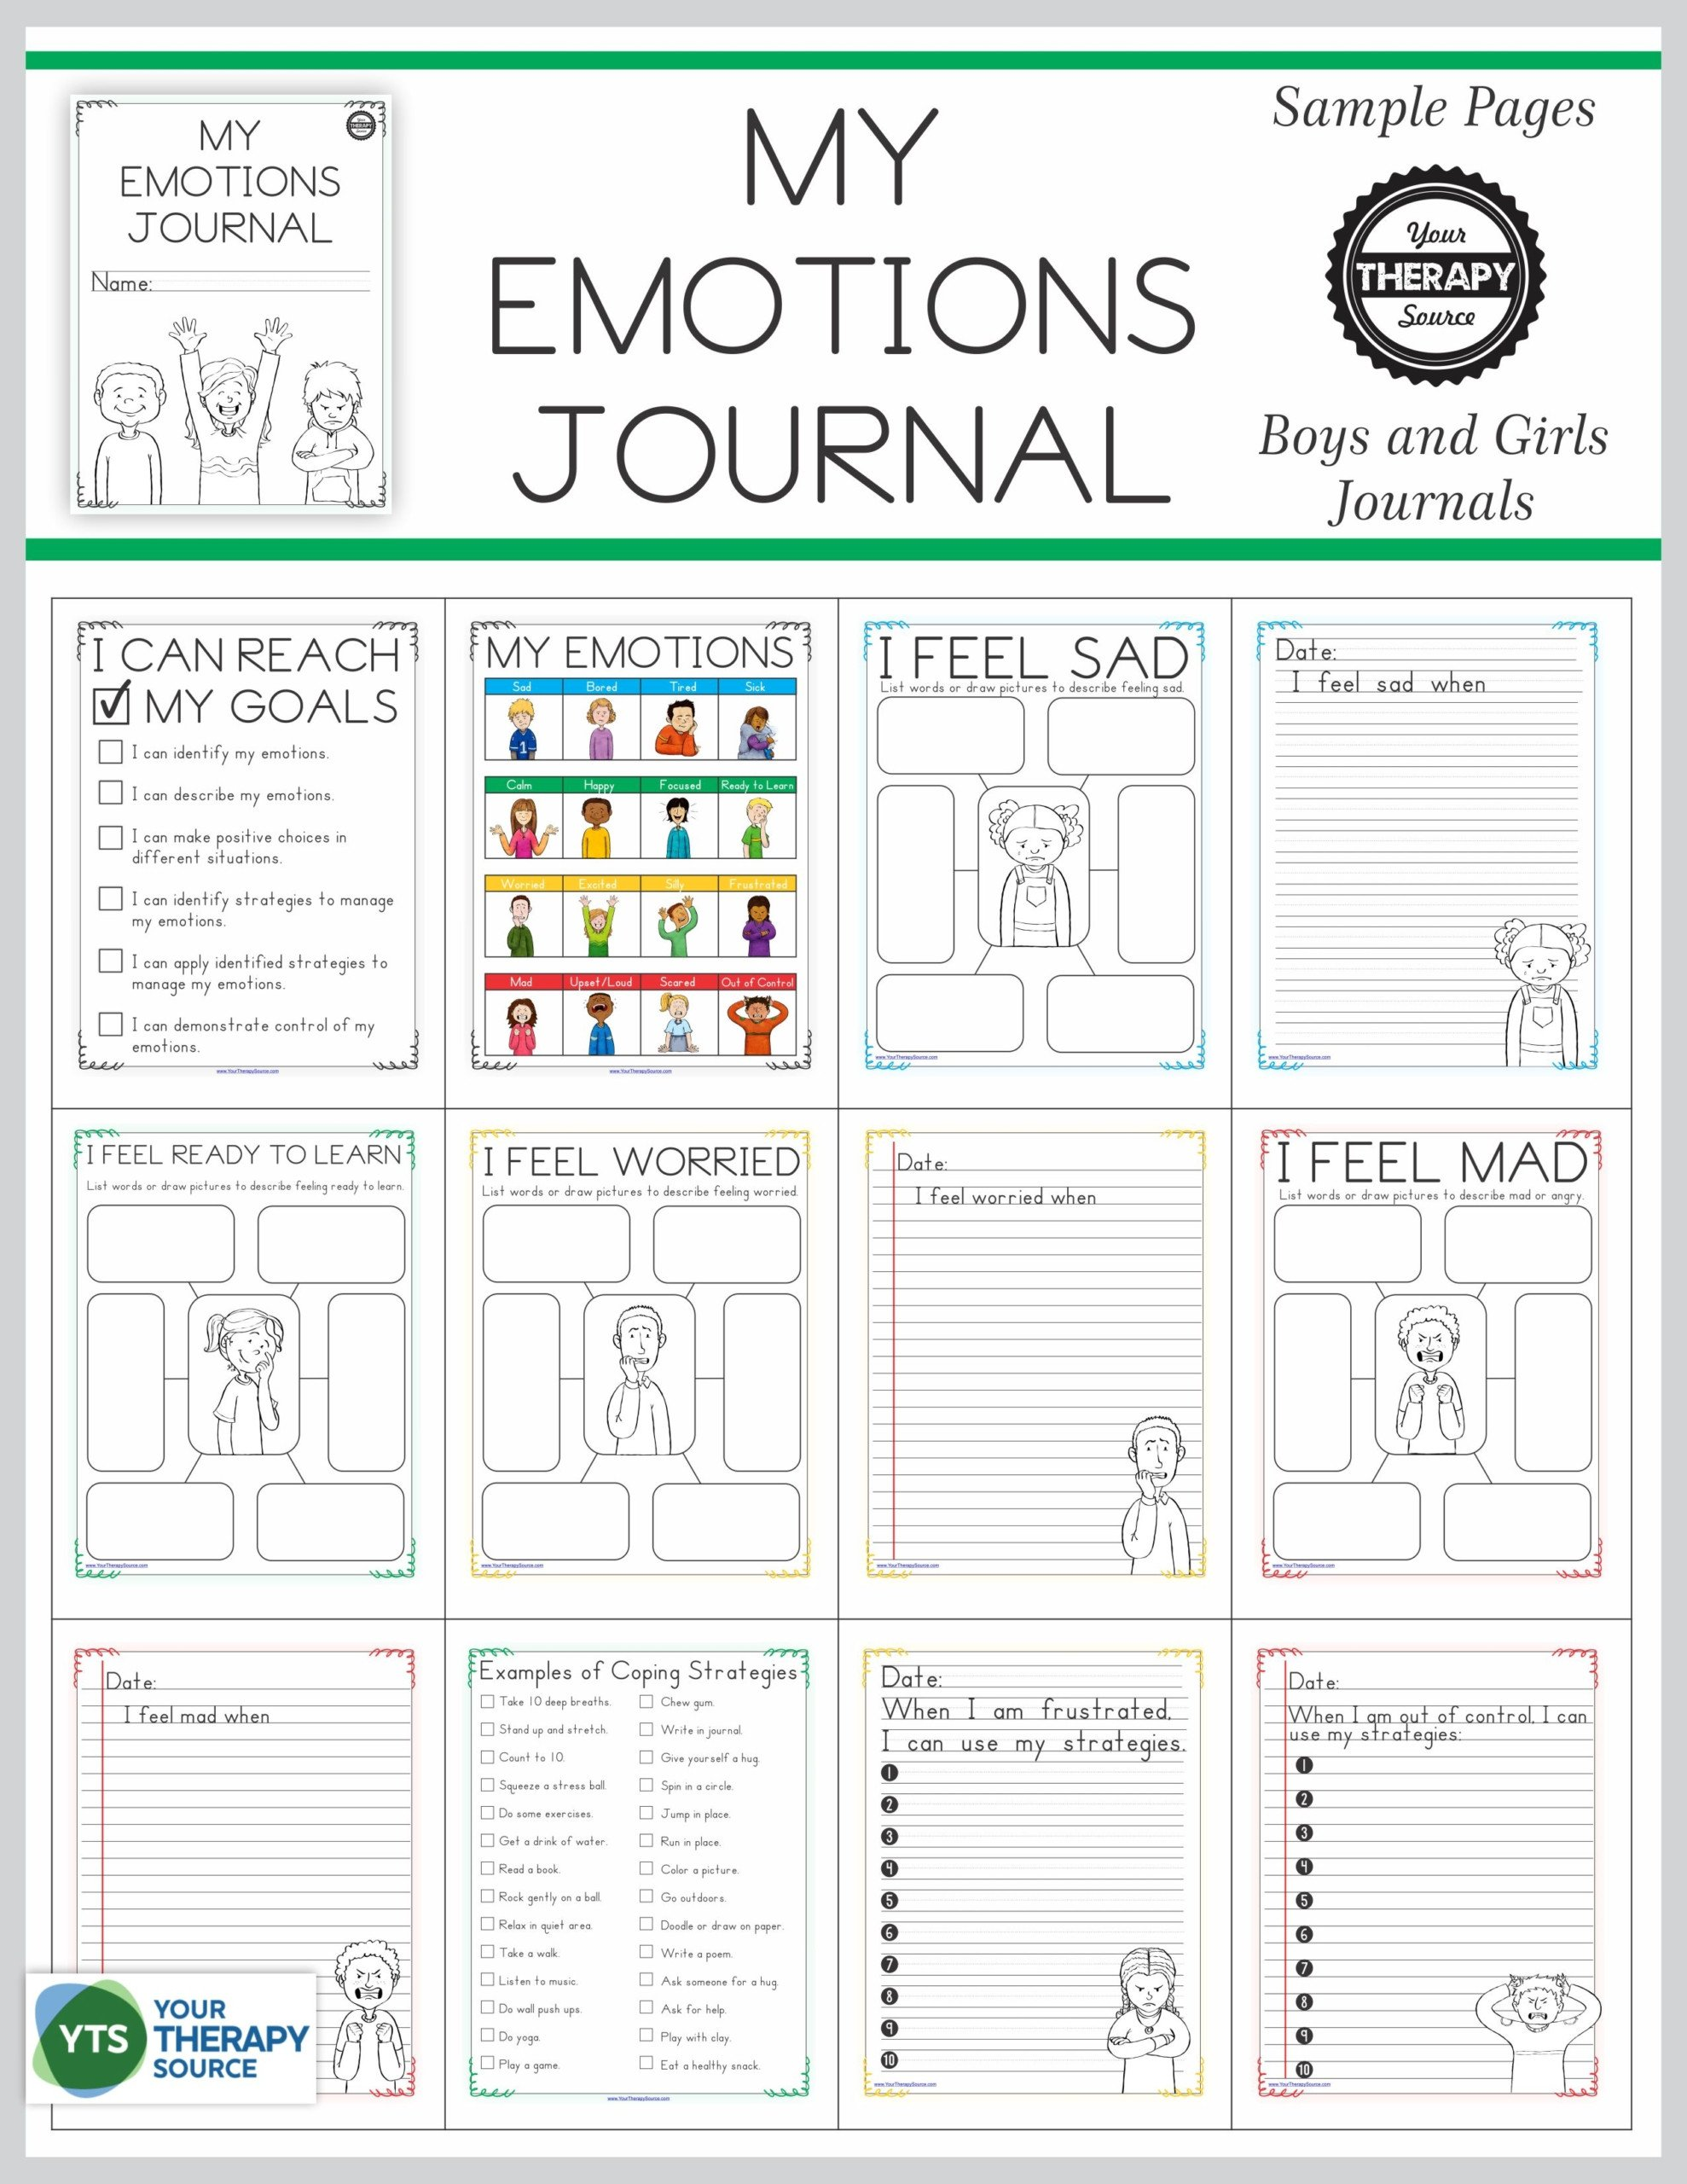 Social Skills Training Worksheets Emotional Regulation Worksheets for Boys and Girls